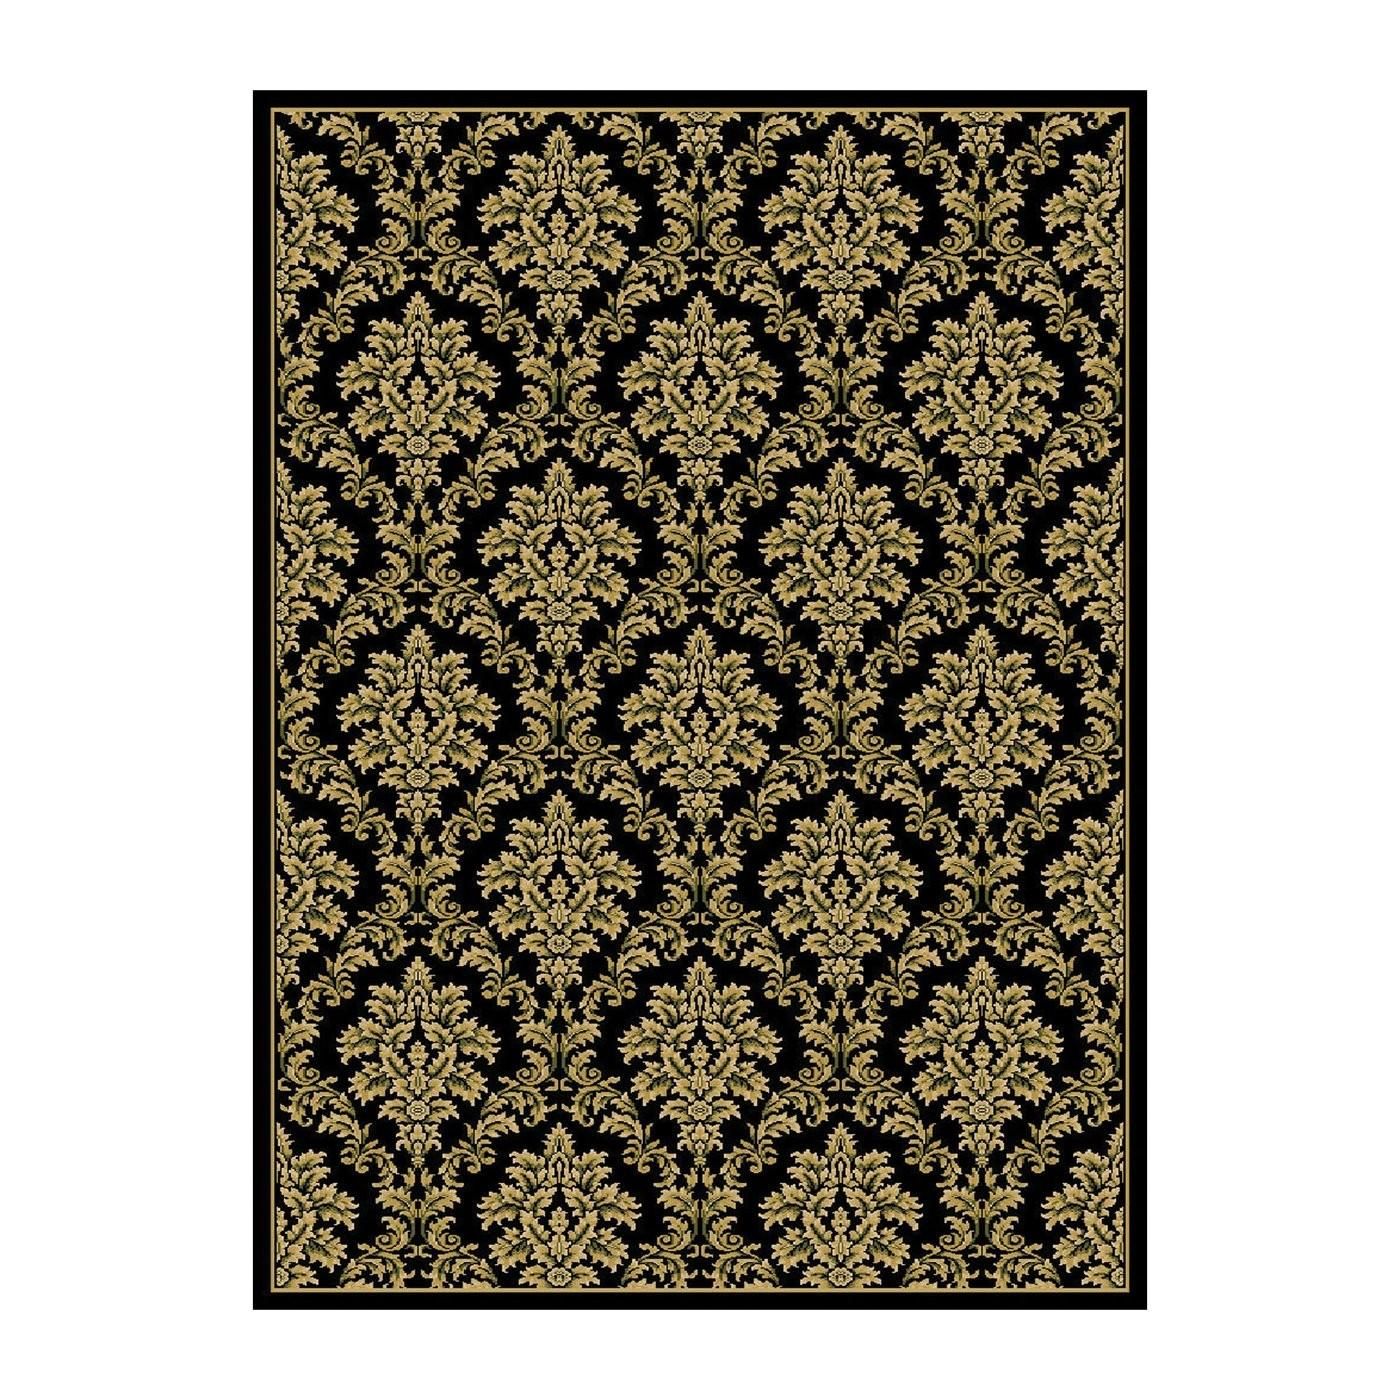 Central Oriental 8355bk4p Damask Area Rug Black